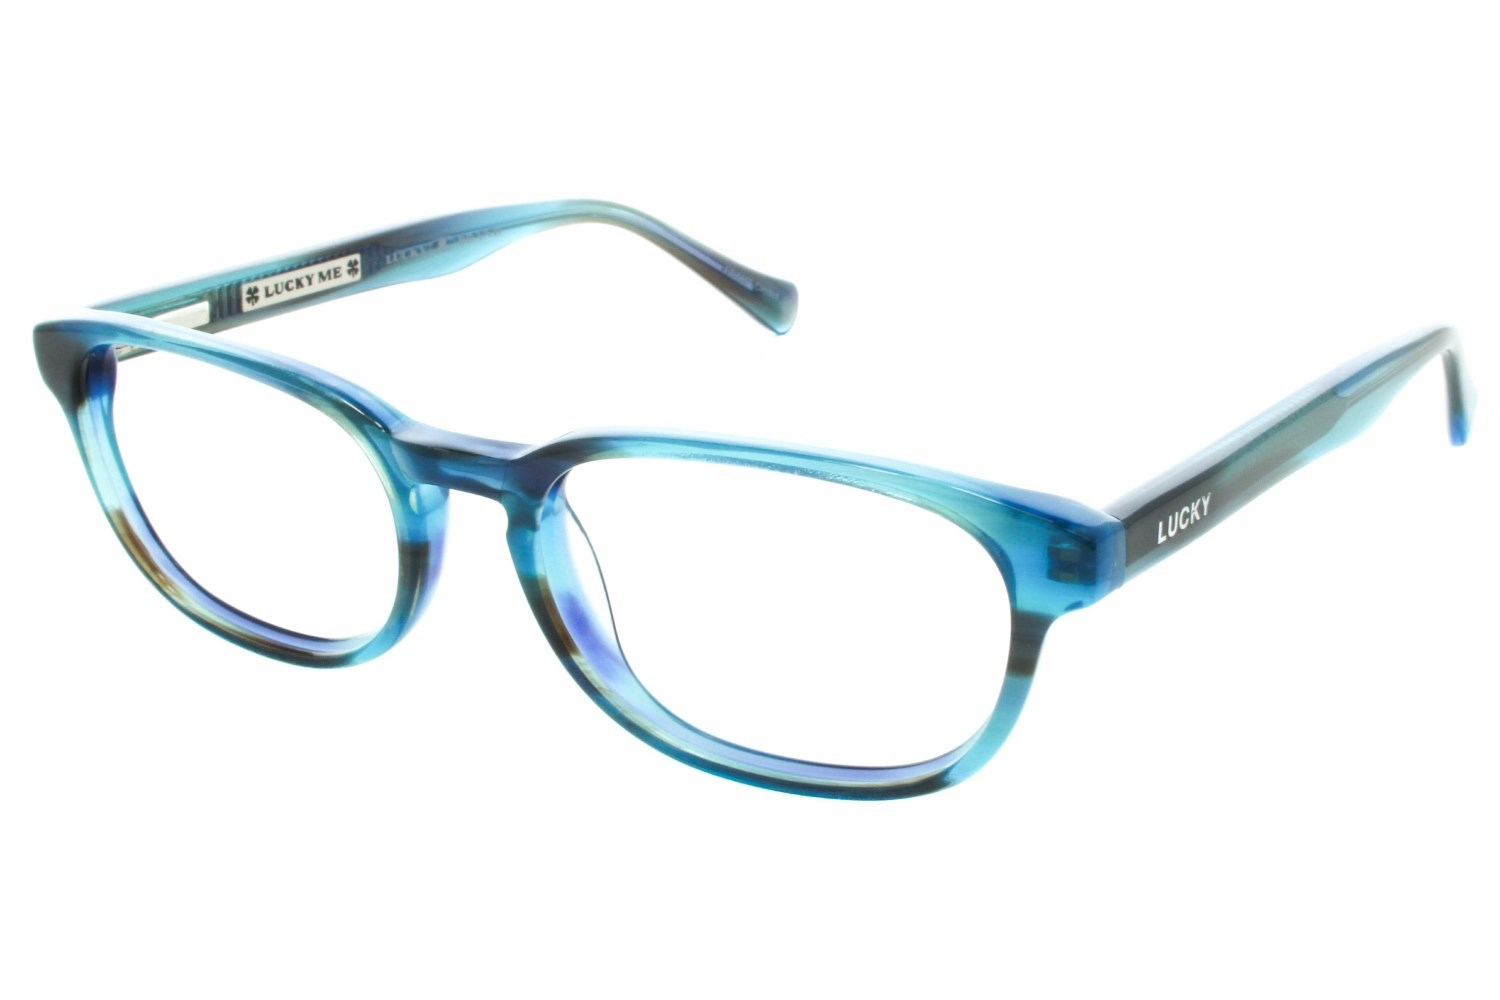 Lucky Dynamo Small Prescription Eyeglasses Frames